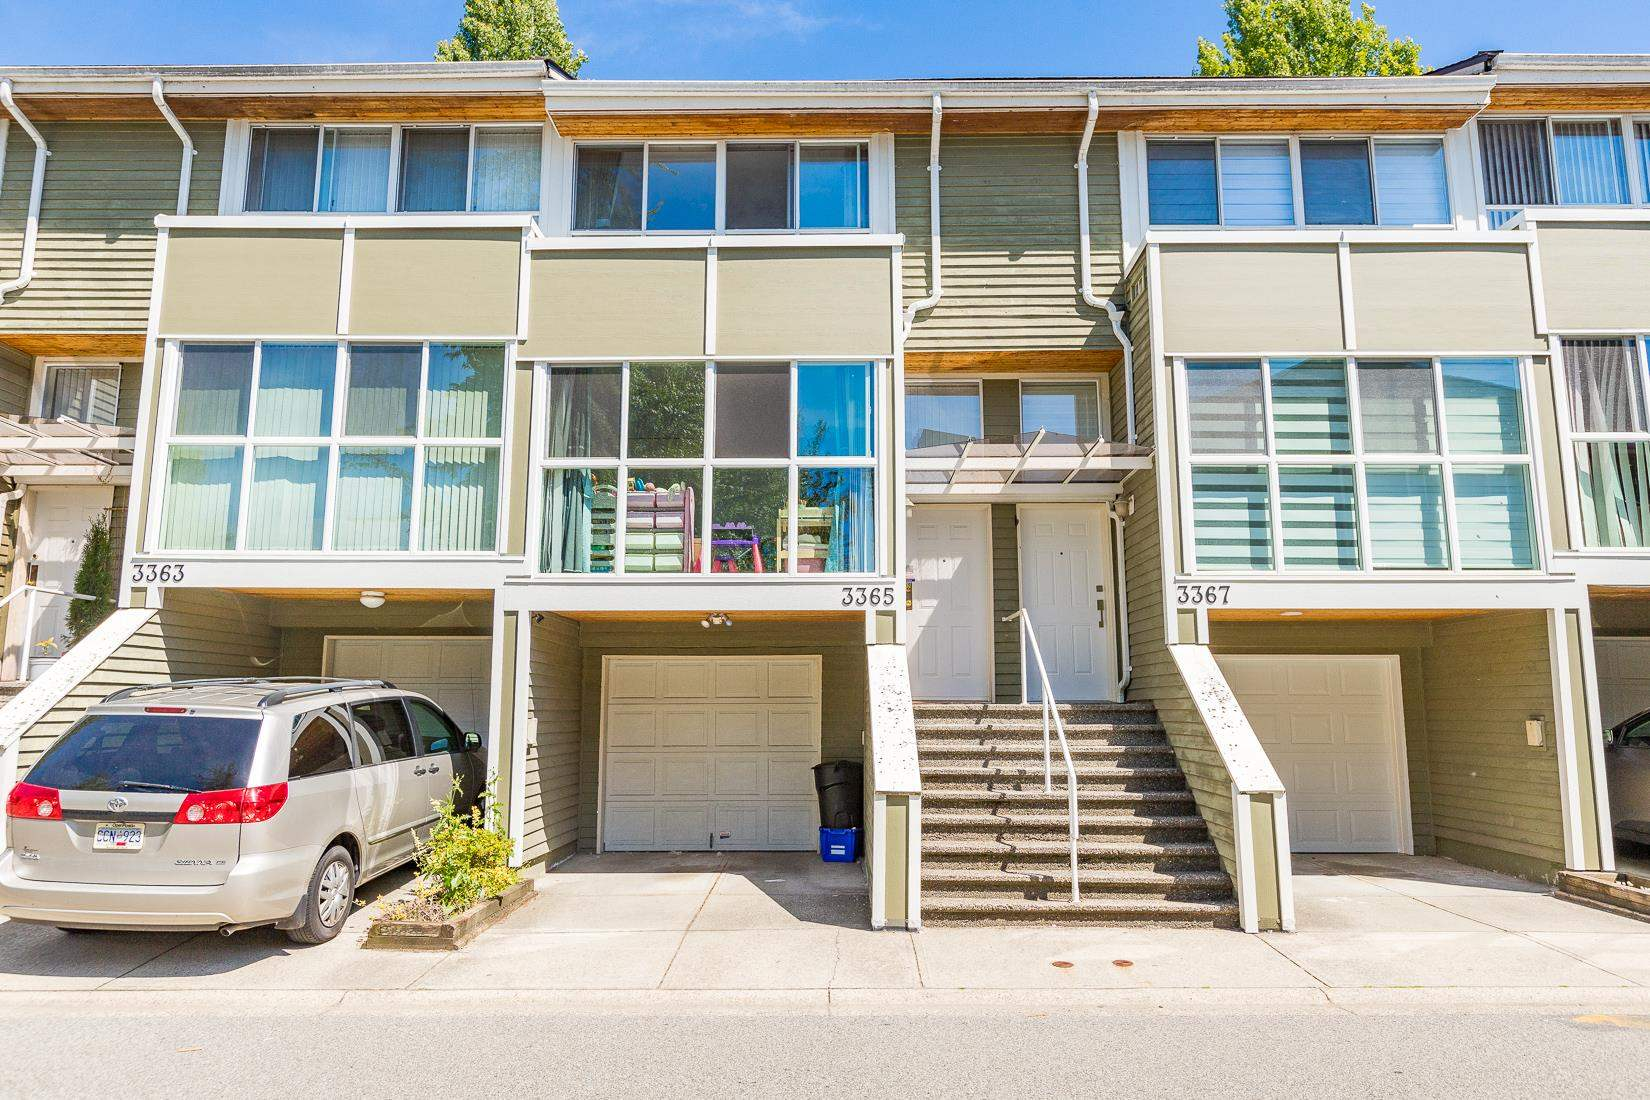 3365 FIELDSTONE AVENUE - Champlain Heights Townhouse for sale, 3 Bedrooms (R2592961) - #1